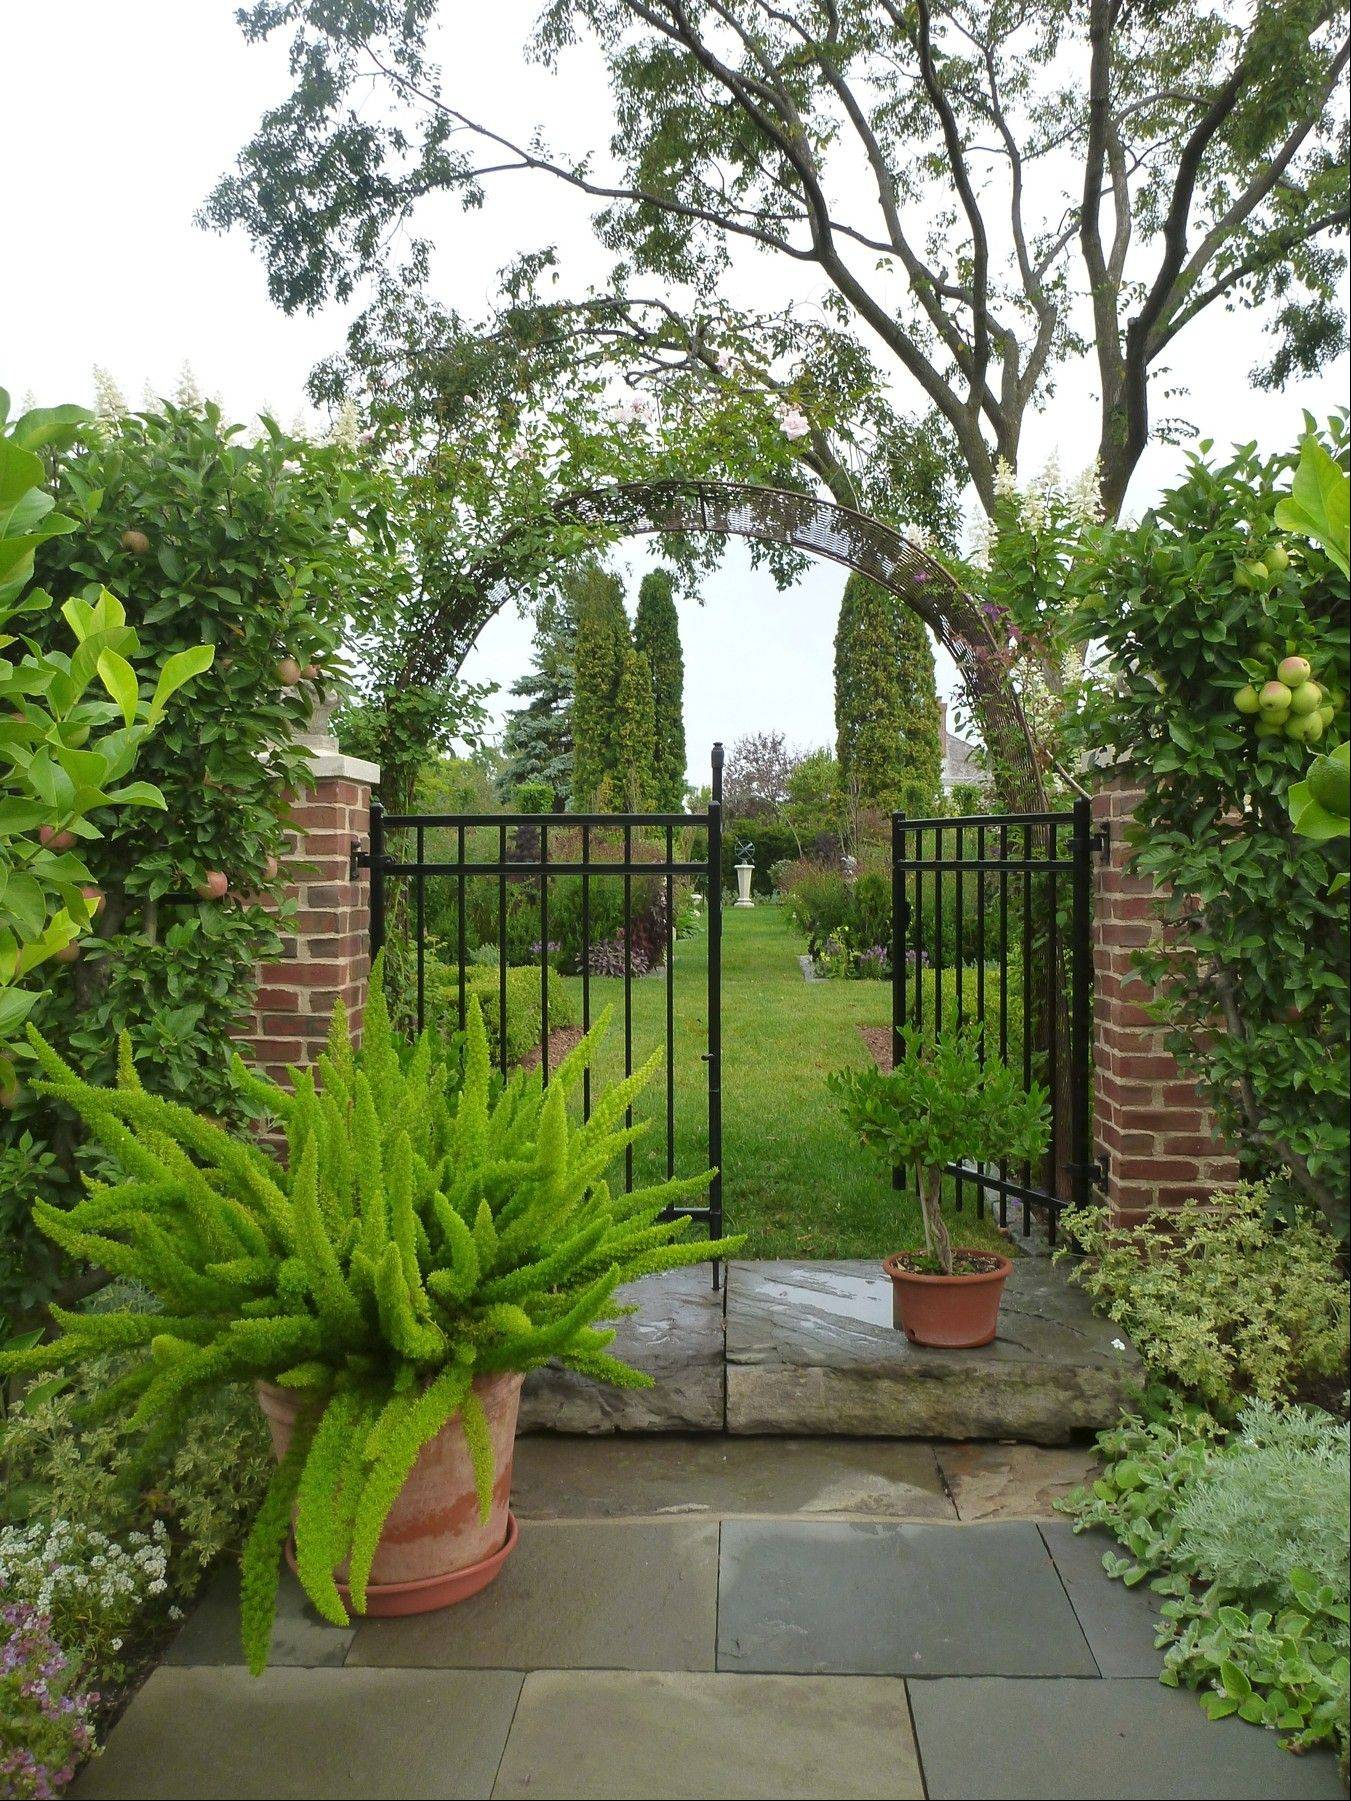 The Garden Conservancy's Open Days Program offers tours of three private gardens on Sunday, July 28, starting at The Gardens at 900 in Lake Forest.